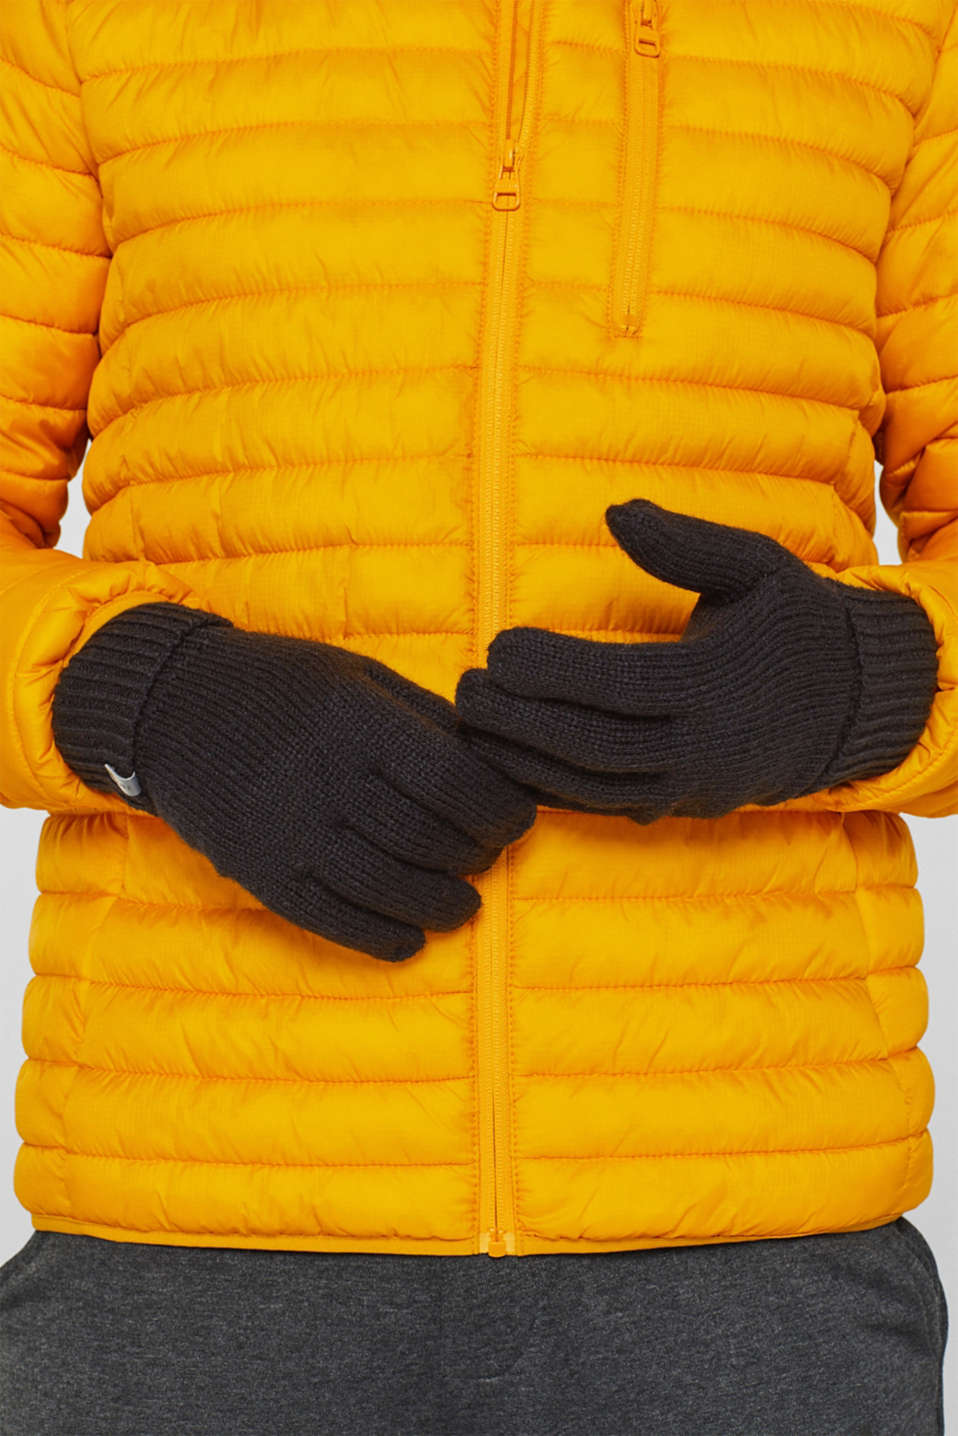 With wool: knit gloves, BLACK, detail image number 2